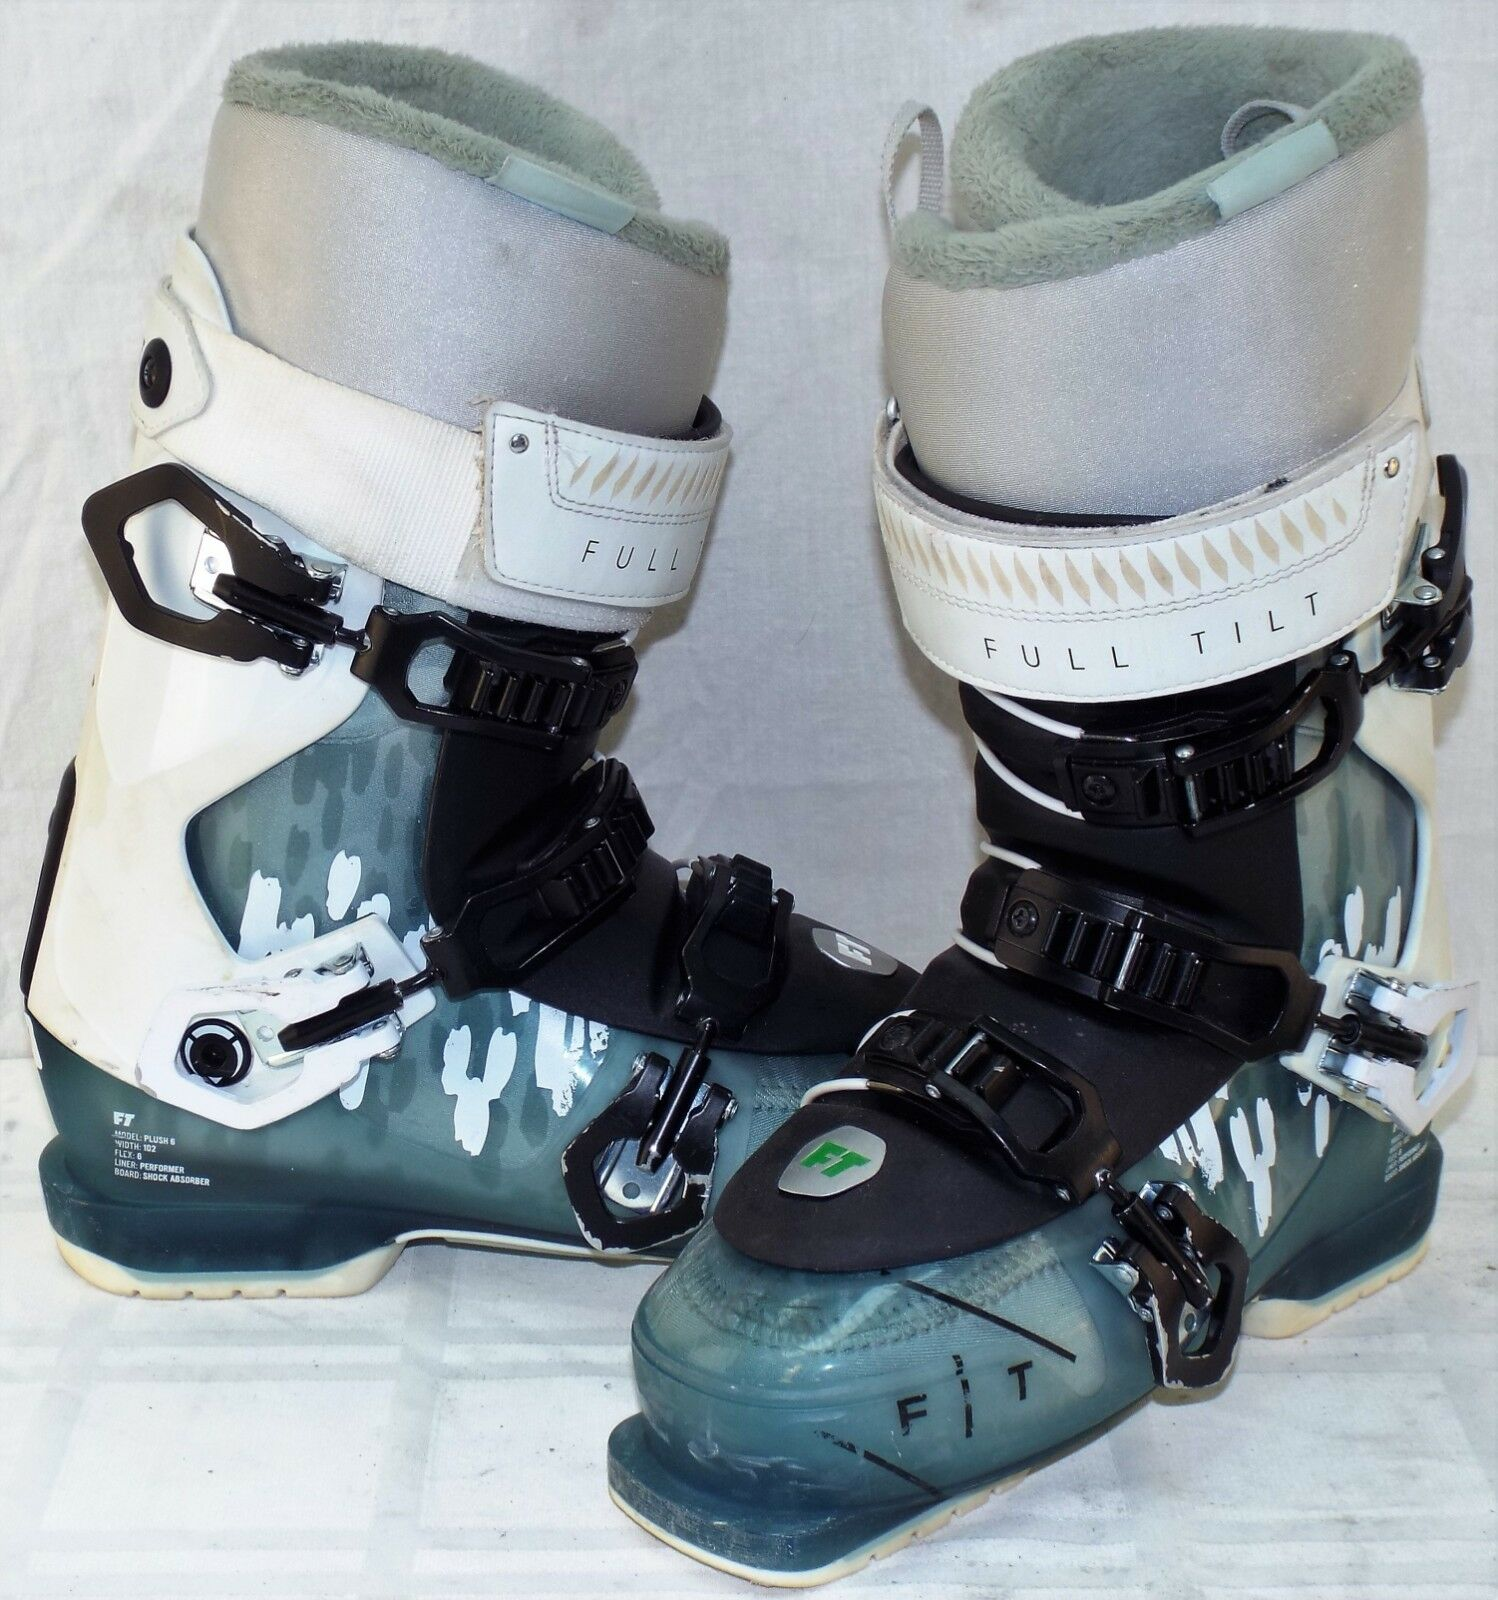 Full Tilt Plush 6 Used Women's Ski Boots Size 25.5